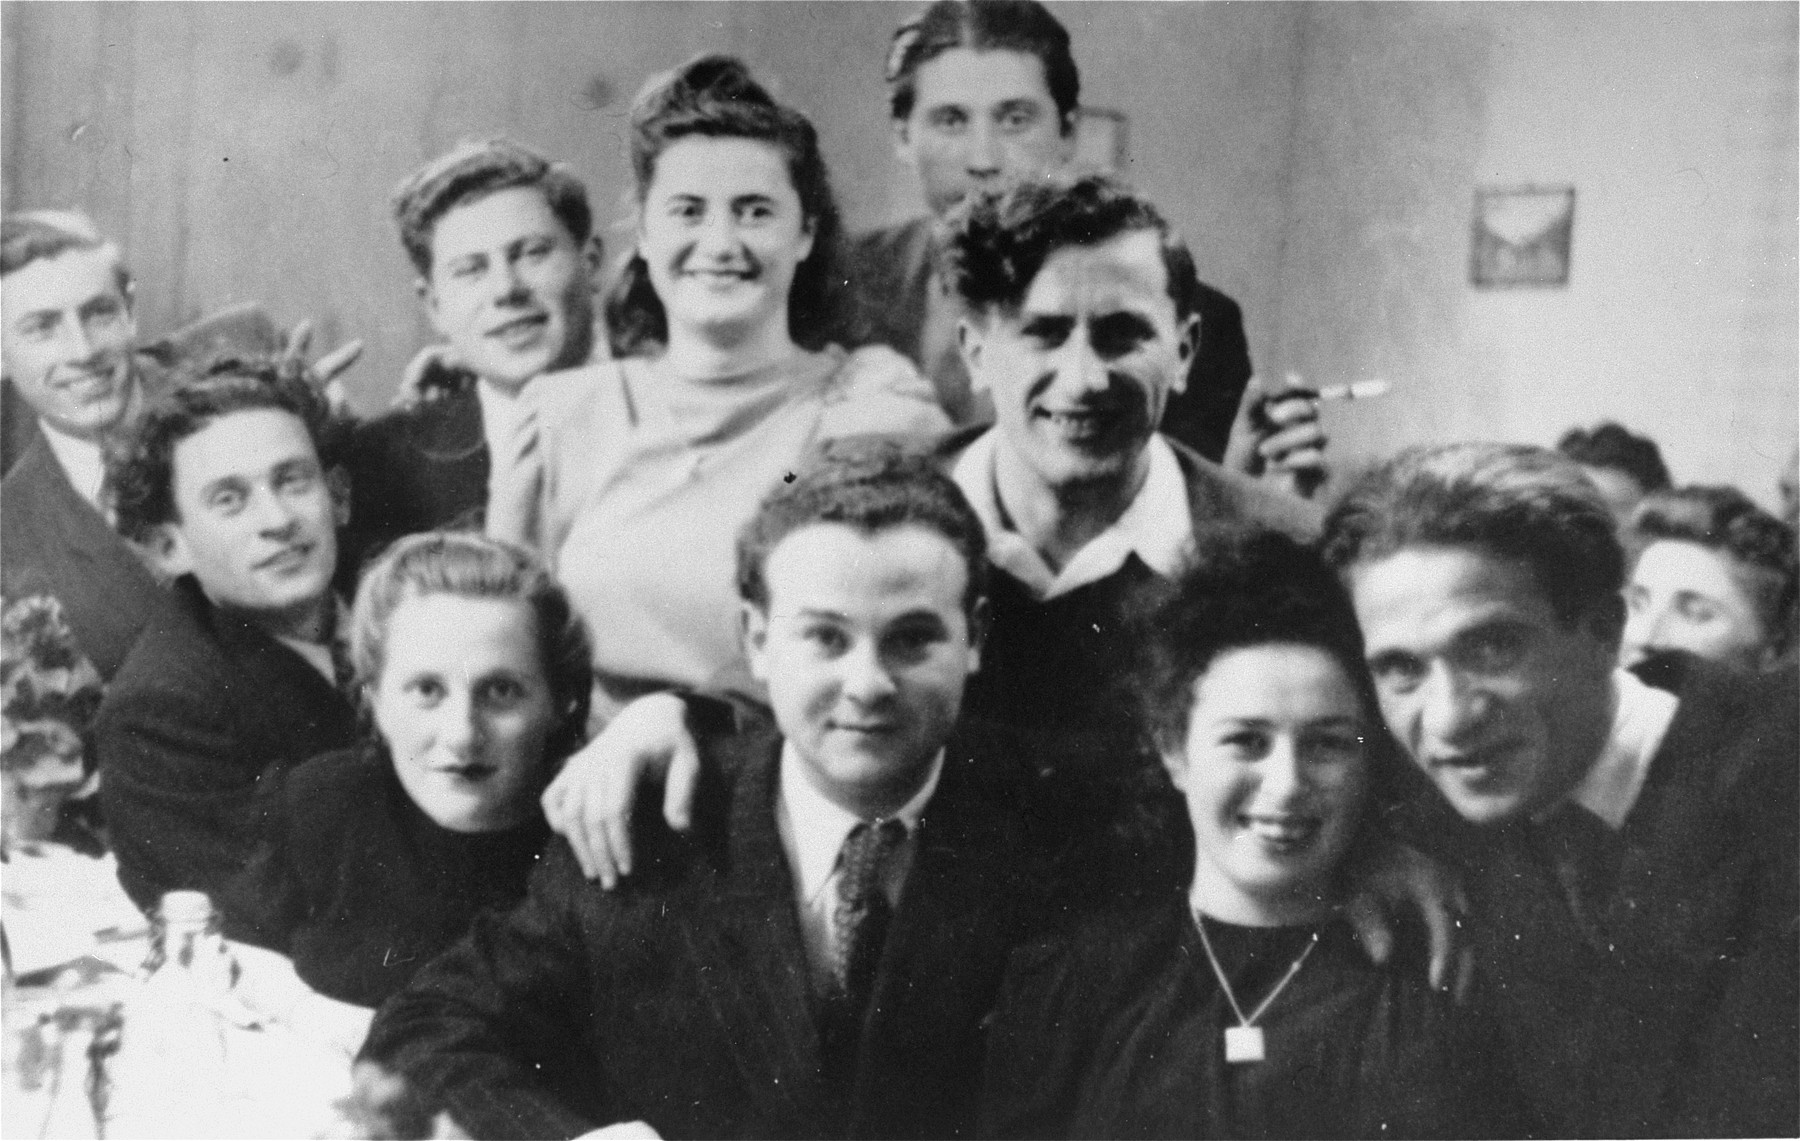 A social gathering at the Foehrenwald displaced persons camp.  Among those pictured are Israel and Ester Korman (second and third from the left), Sam and Regina Spiegel (back row)  David Bajer (standing in the center), and Leon and Rose Badner (first and second from right).  Israel's mother and Sam's father were siblings. Rose and Ester survived the war hidden by a gentile woman in Babice named Petronela Lach [?].